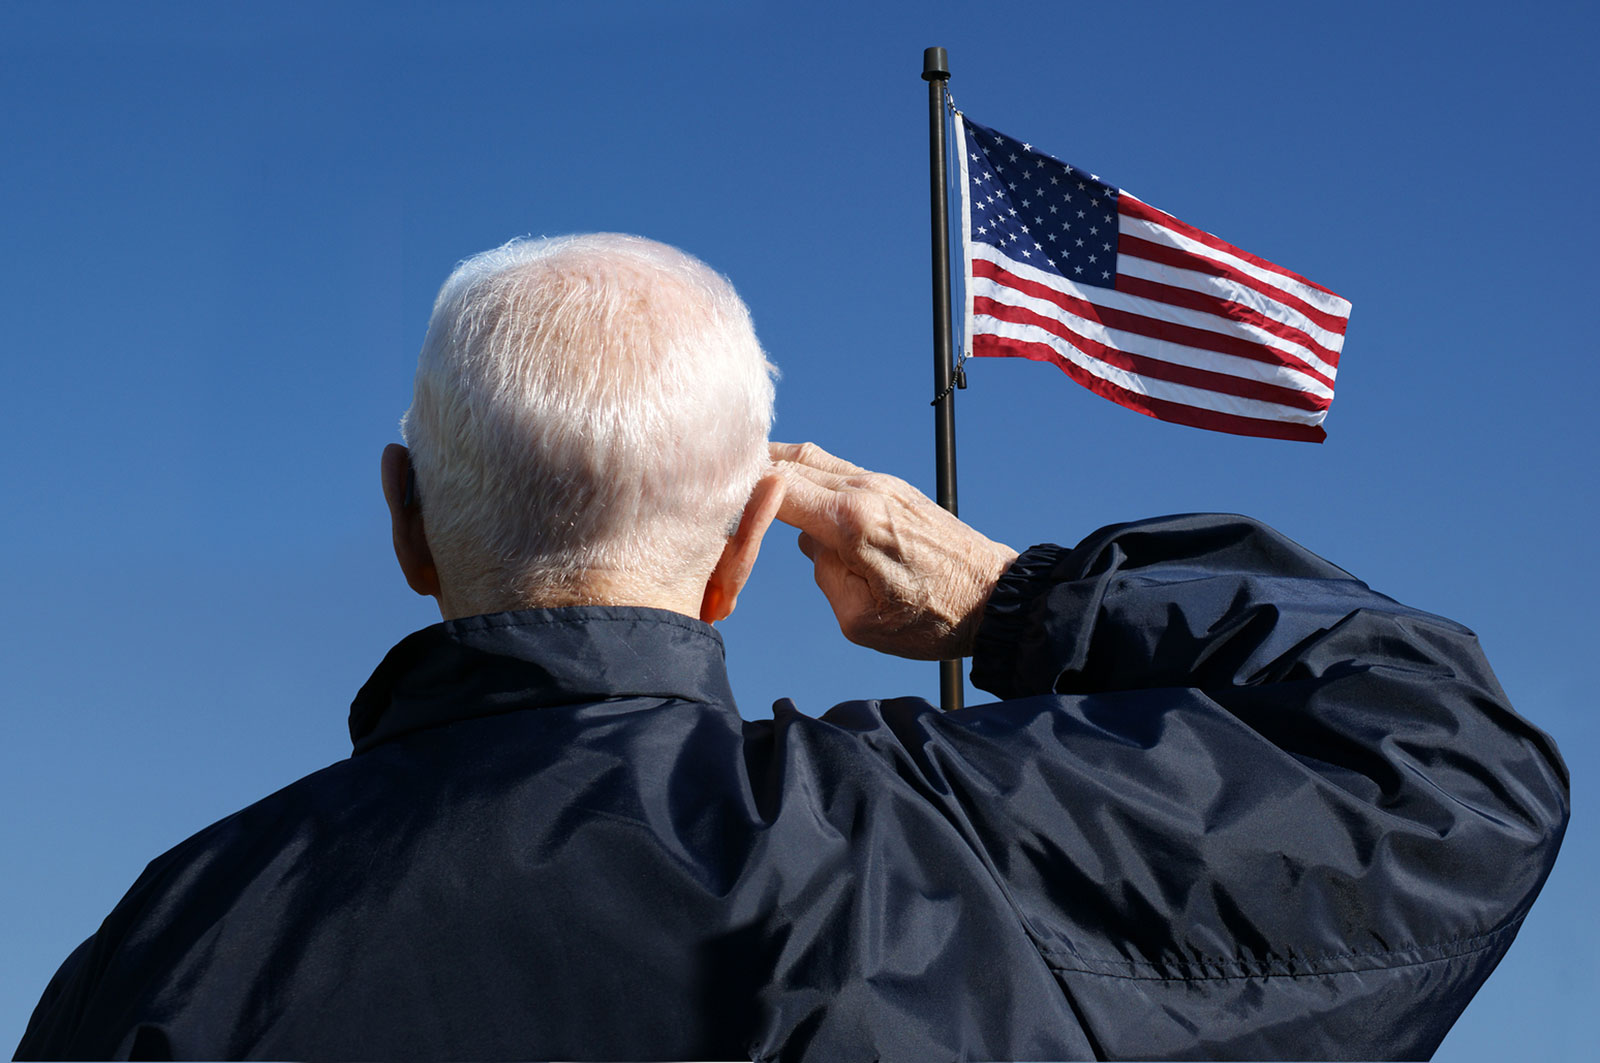 5 Ways to Support Our Veterans